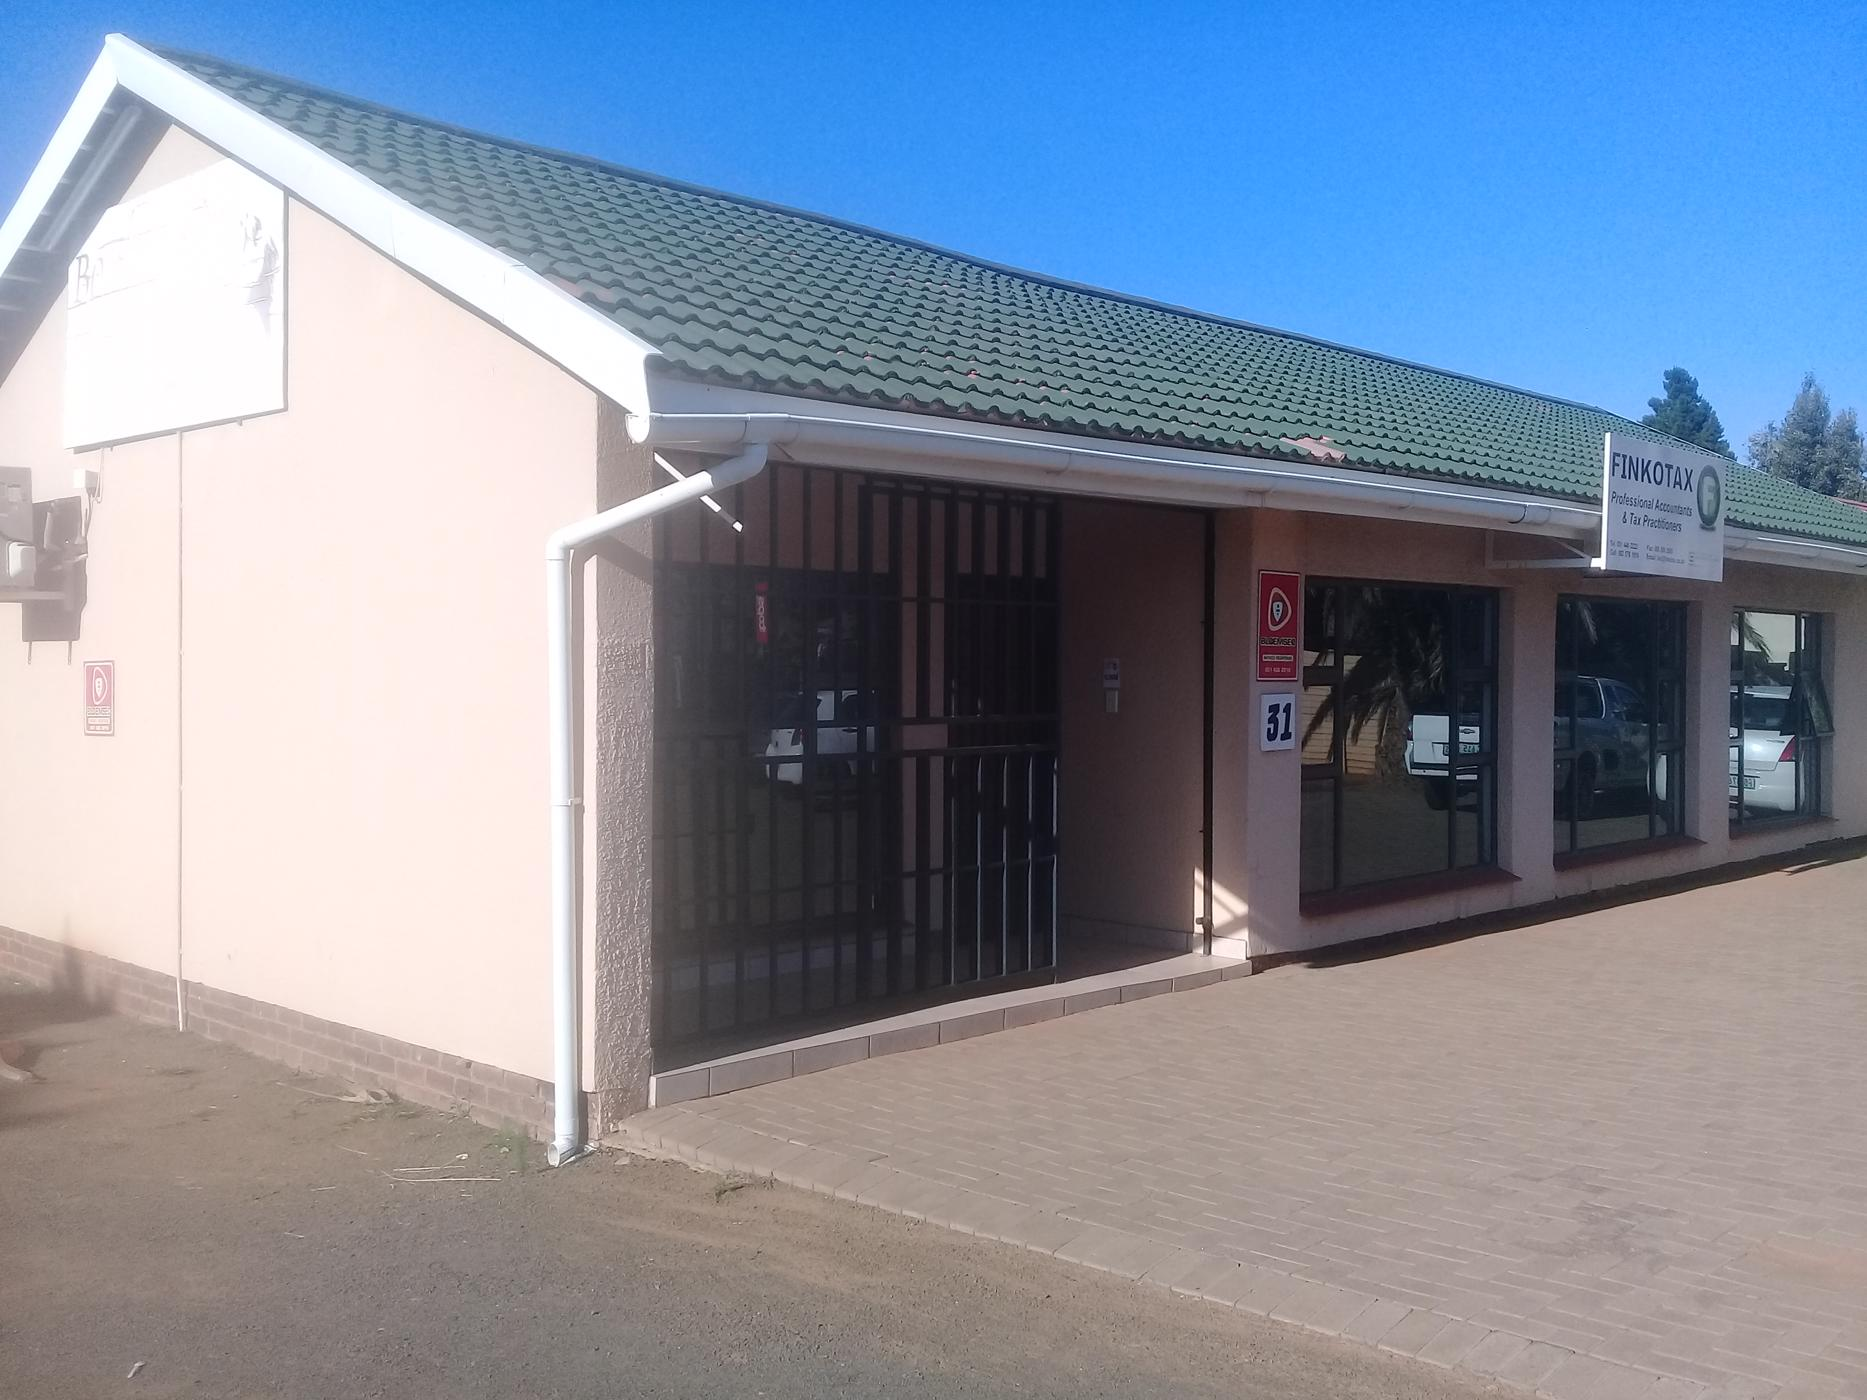 https://listing.pamgolding.co.za/images/properties/201902/1274551/H/1274551_H_2.jpg